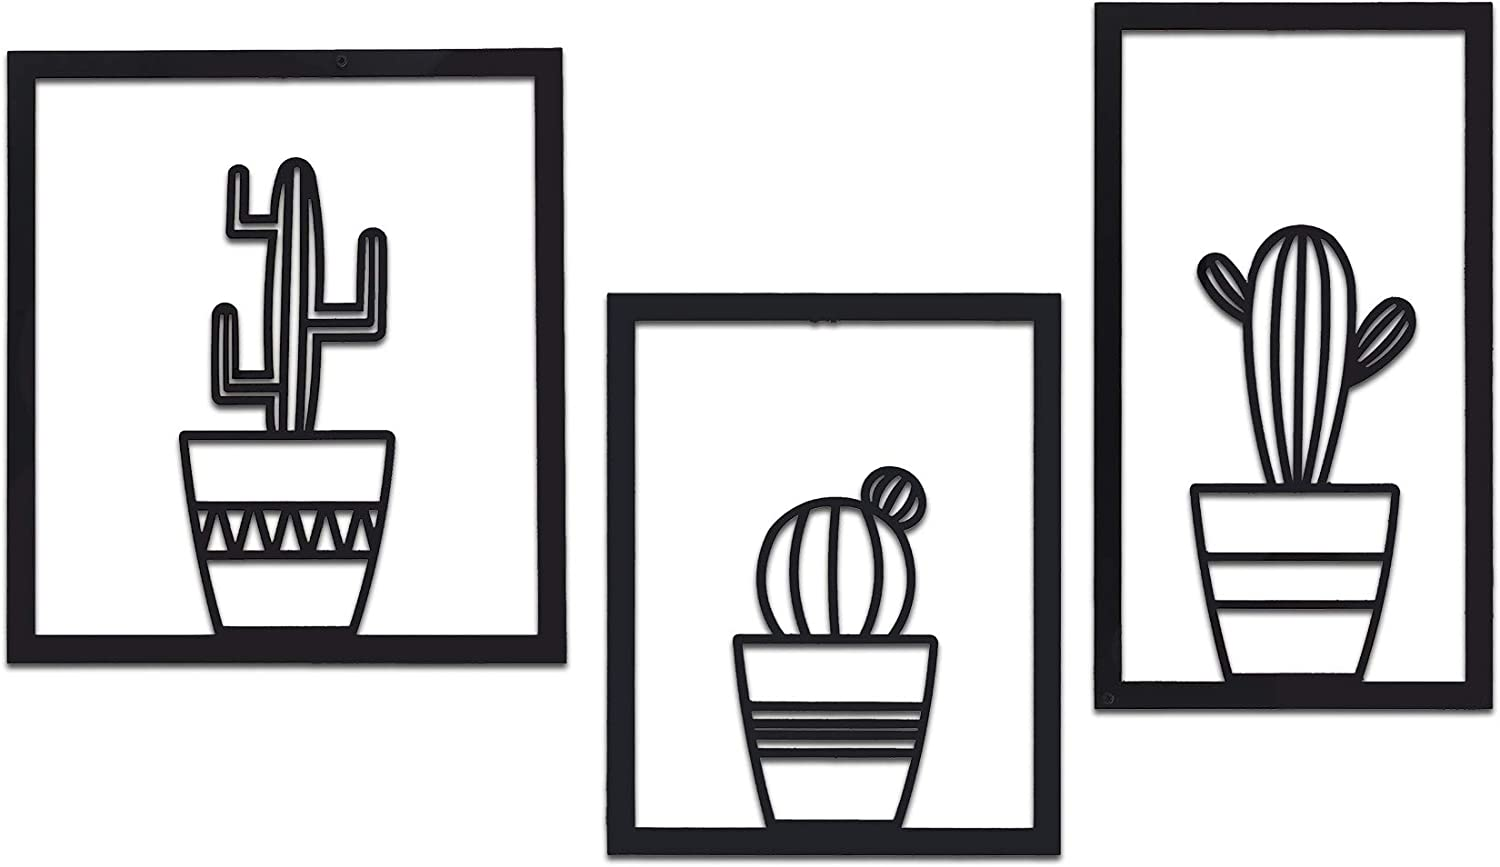 SOFT ART HOME Modern Wall Art Triple Cactus, Metal Wall Decoration 3 Pieces for Home. Vase Cactuses, Interior Decor for Office and Living Room, Natural Themed House Warming Gift.